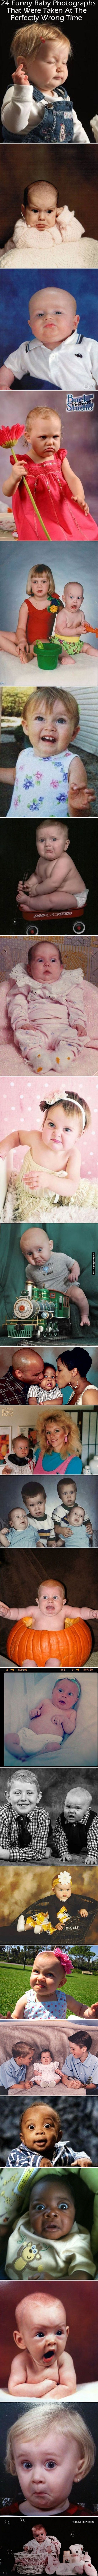 24 Funny Baby Photographs That Were Taken At The Perfectly Wrong Time funny lol fail humor funny pictures funny kids fails hysterical funny images